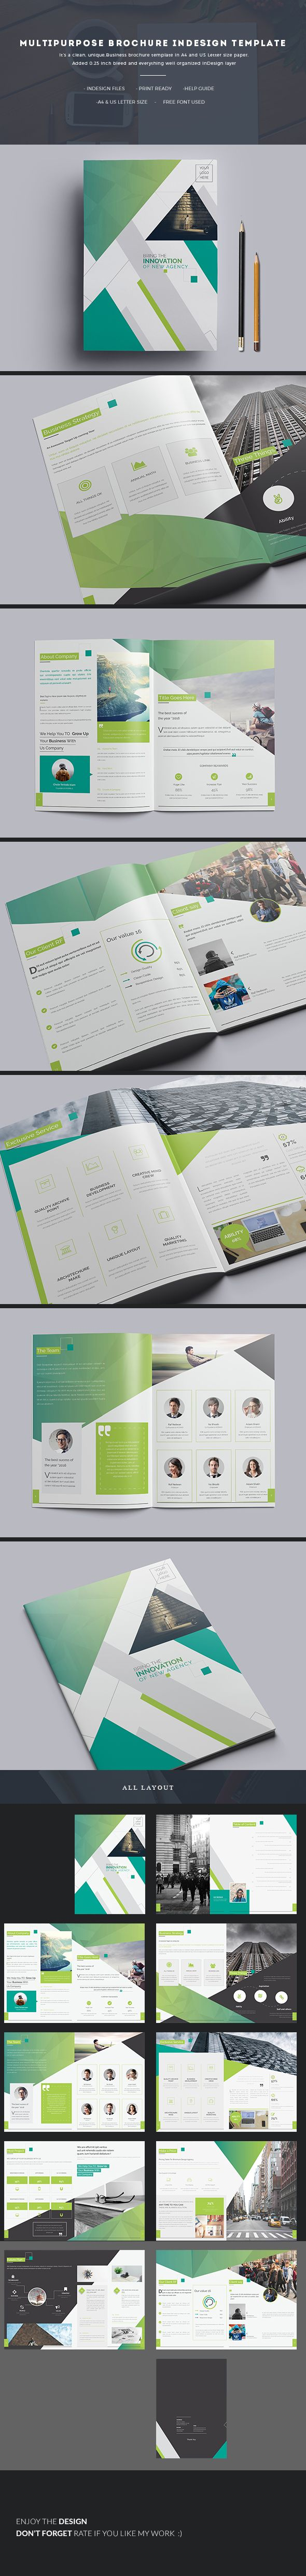 Multipurpose brochure is very easy to use and change text,color,size,look and everything because i made it on Adobe InDesign (indd & idml ) file so please don't worry about changing :) here is full view :https://graphicriver.net/item/multipurpose-brochure-indesign-template/18181920